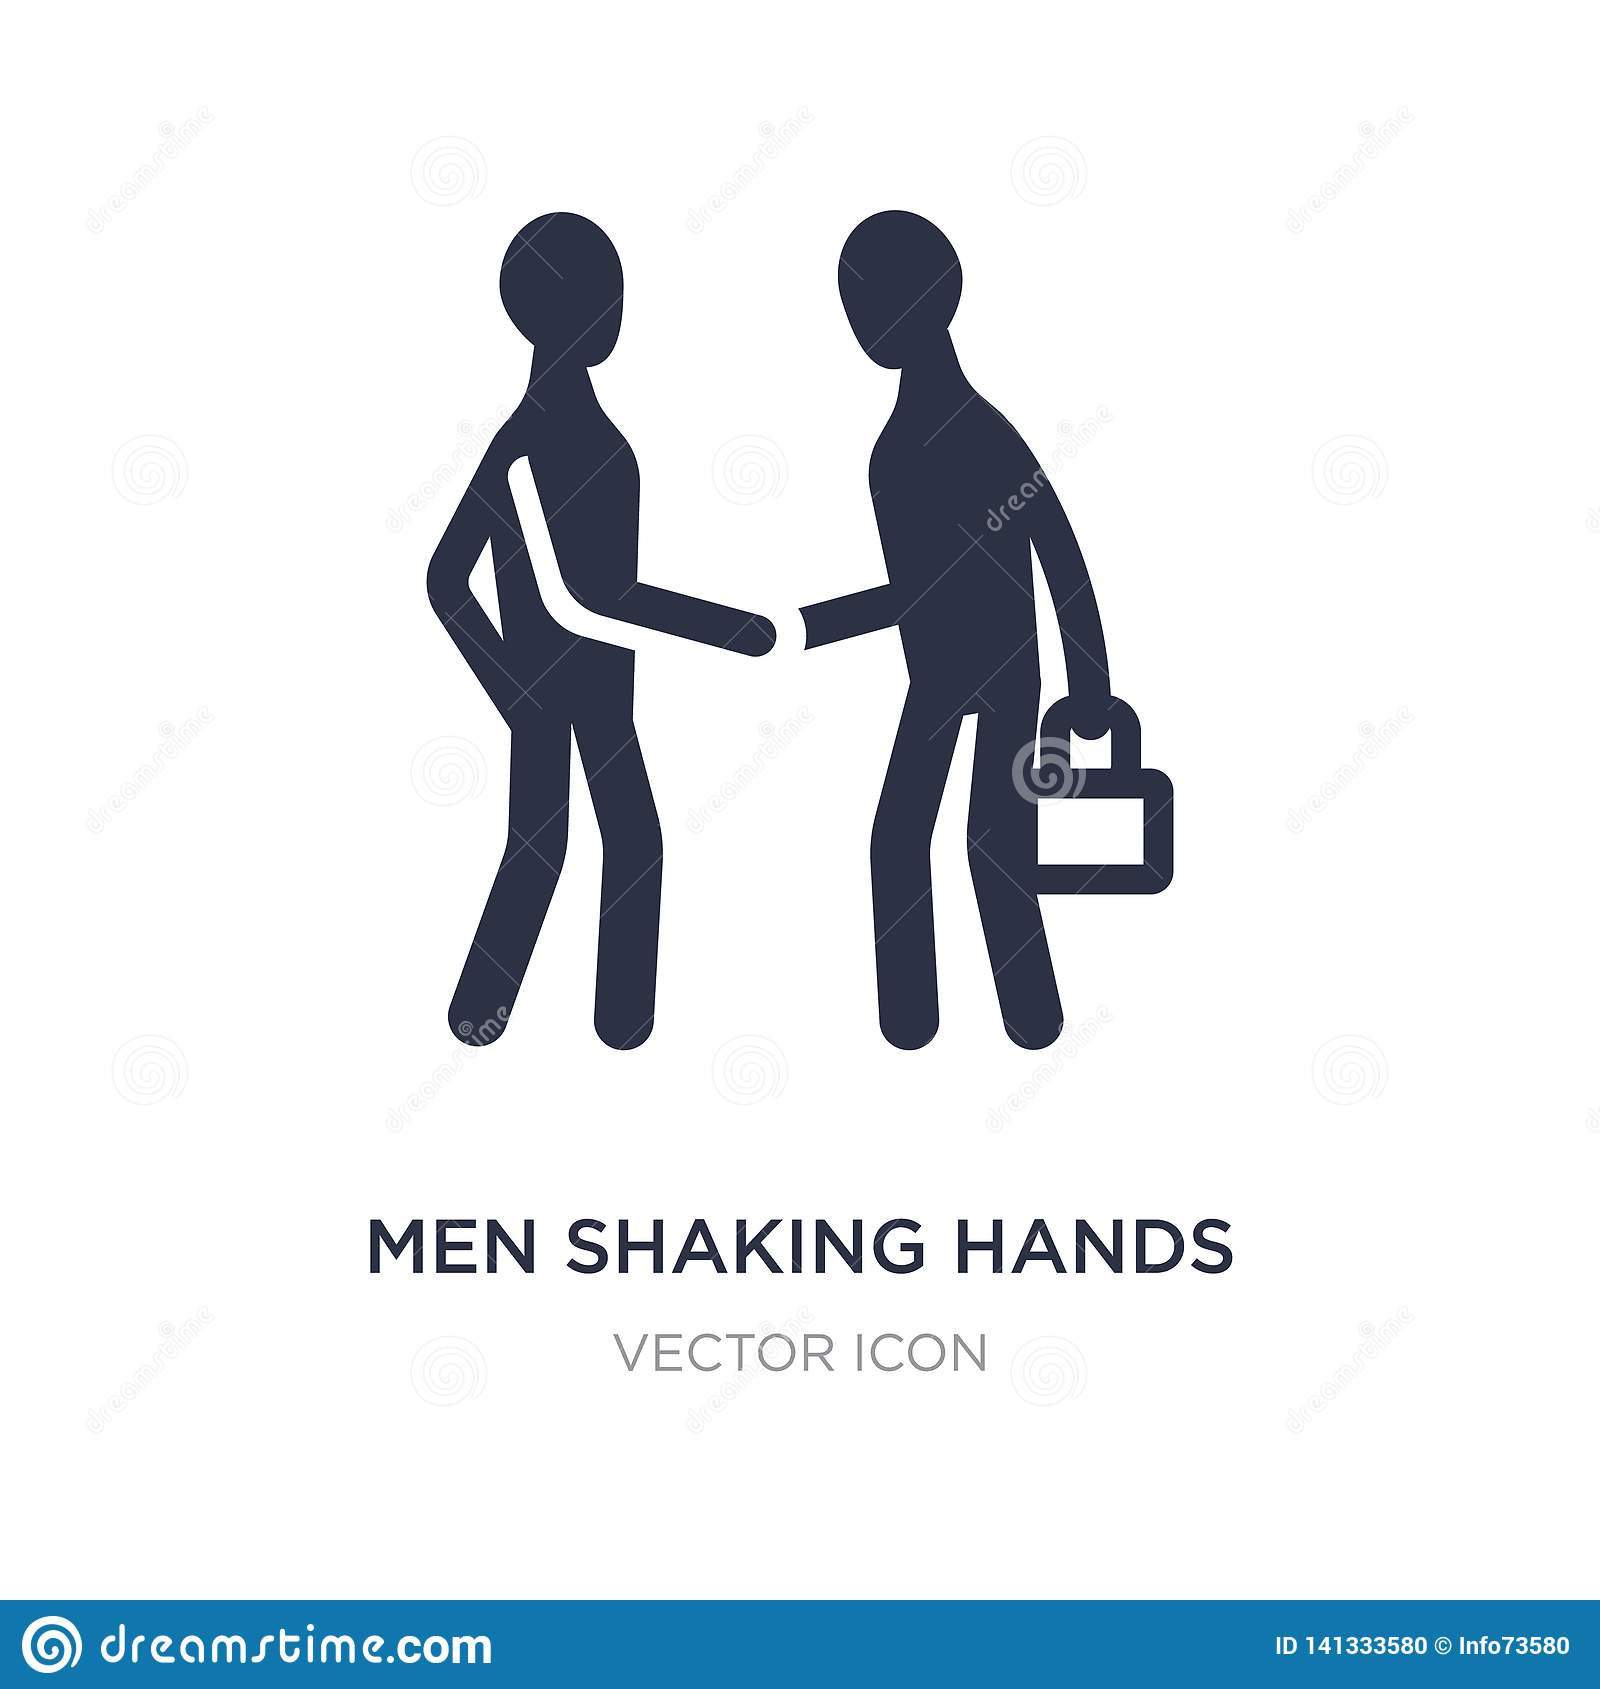 men shaking hands icon on white background. Simple element illustration from Business concept